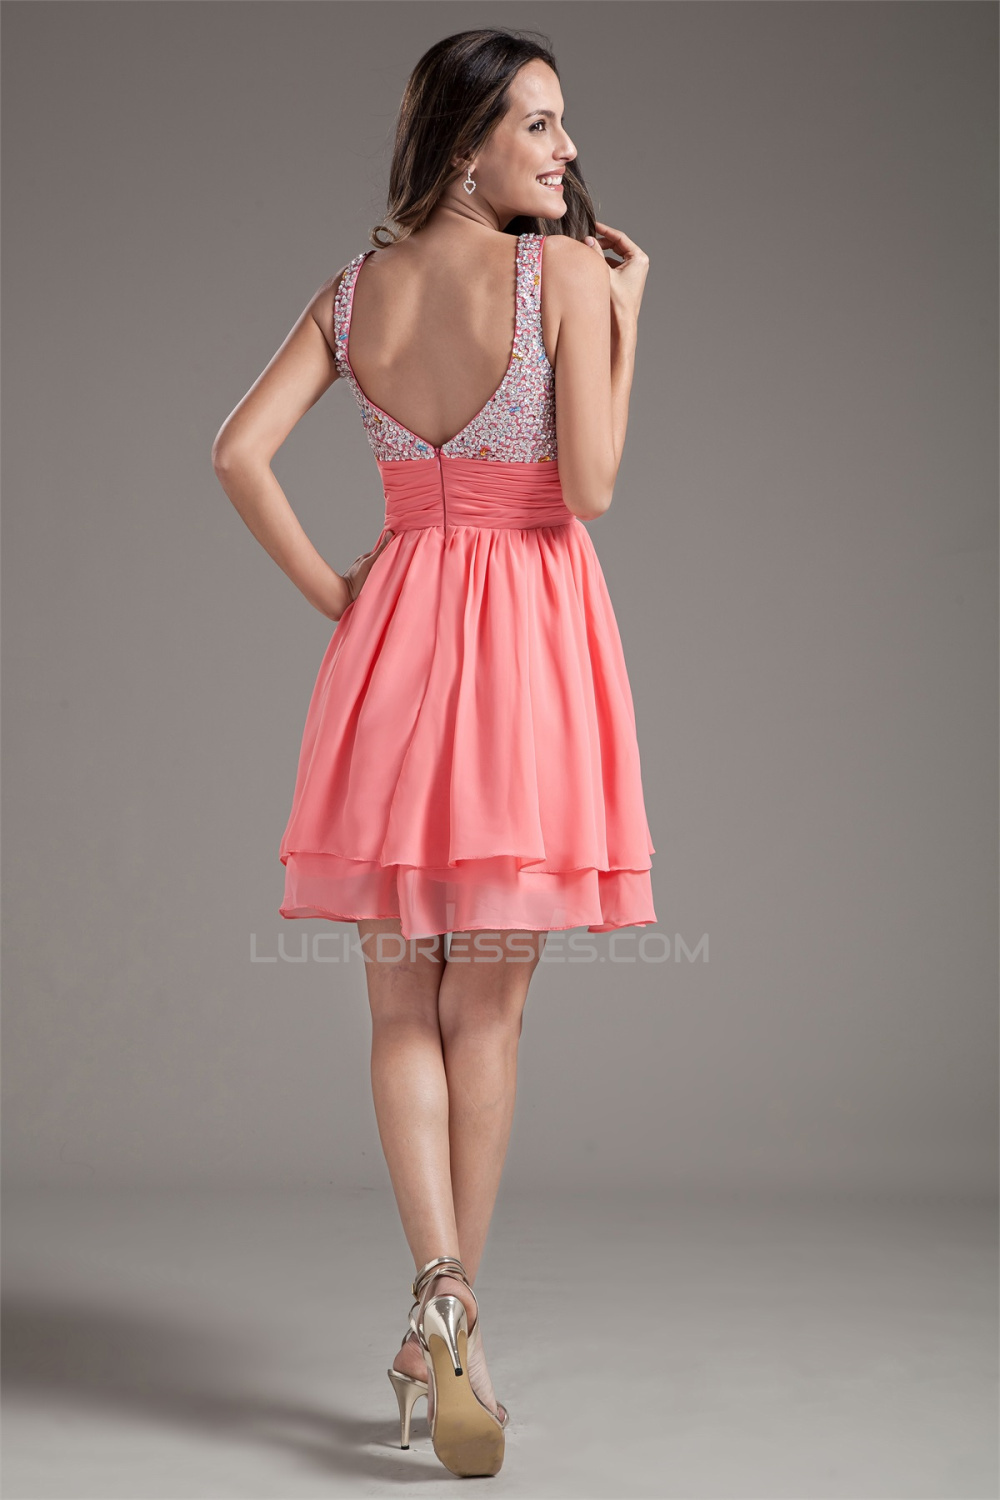 Chiffon Silk Like Satin Sleeveless Short Mini Prom Formal